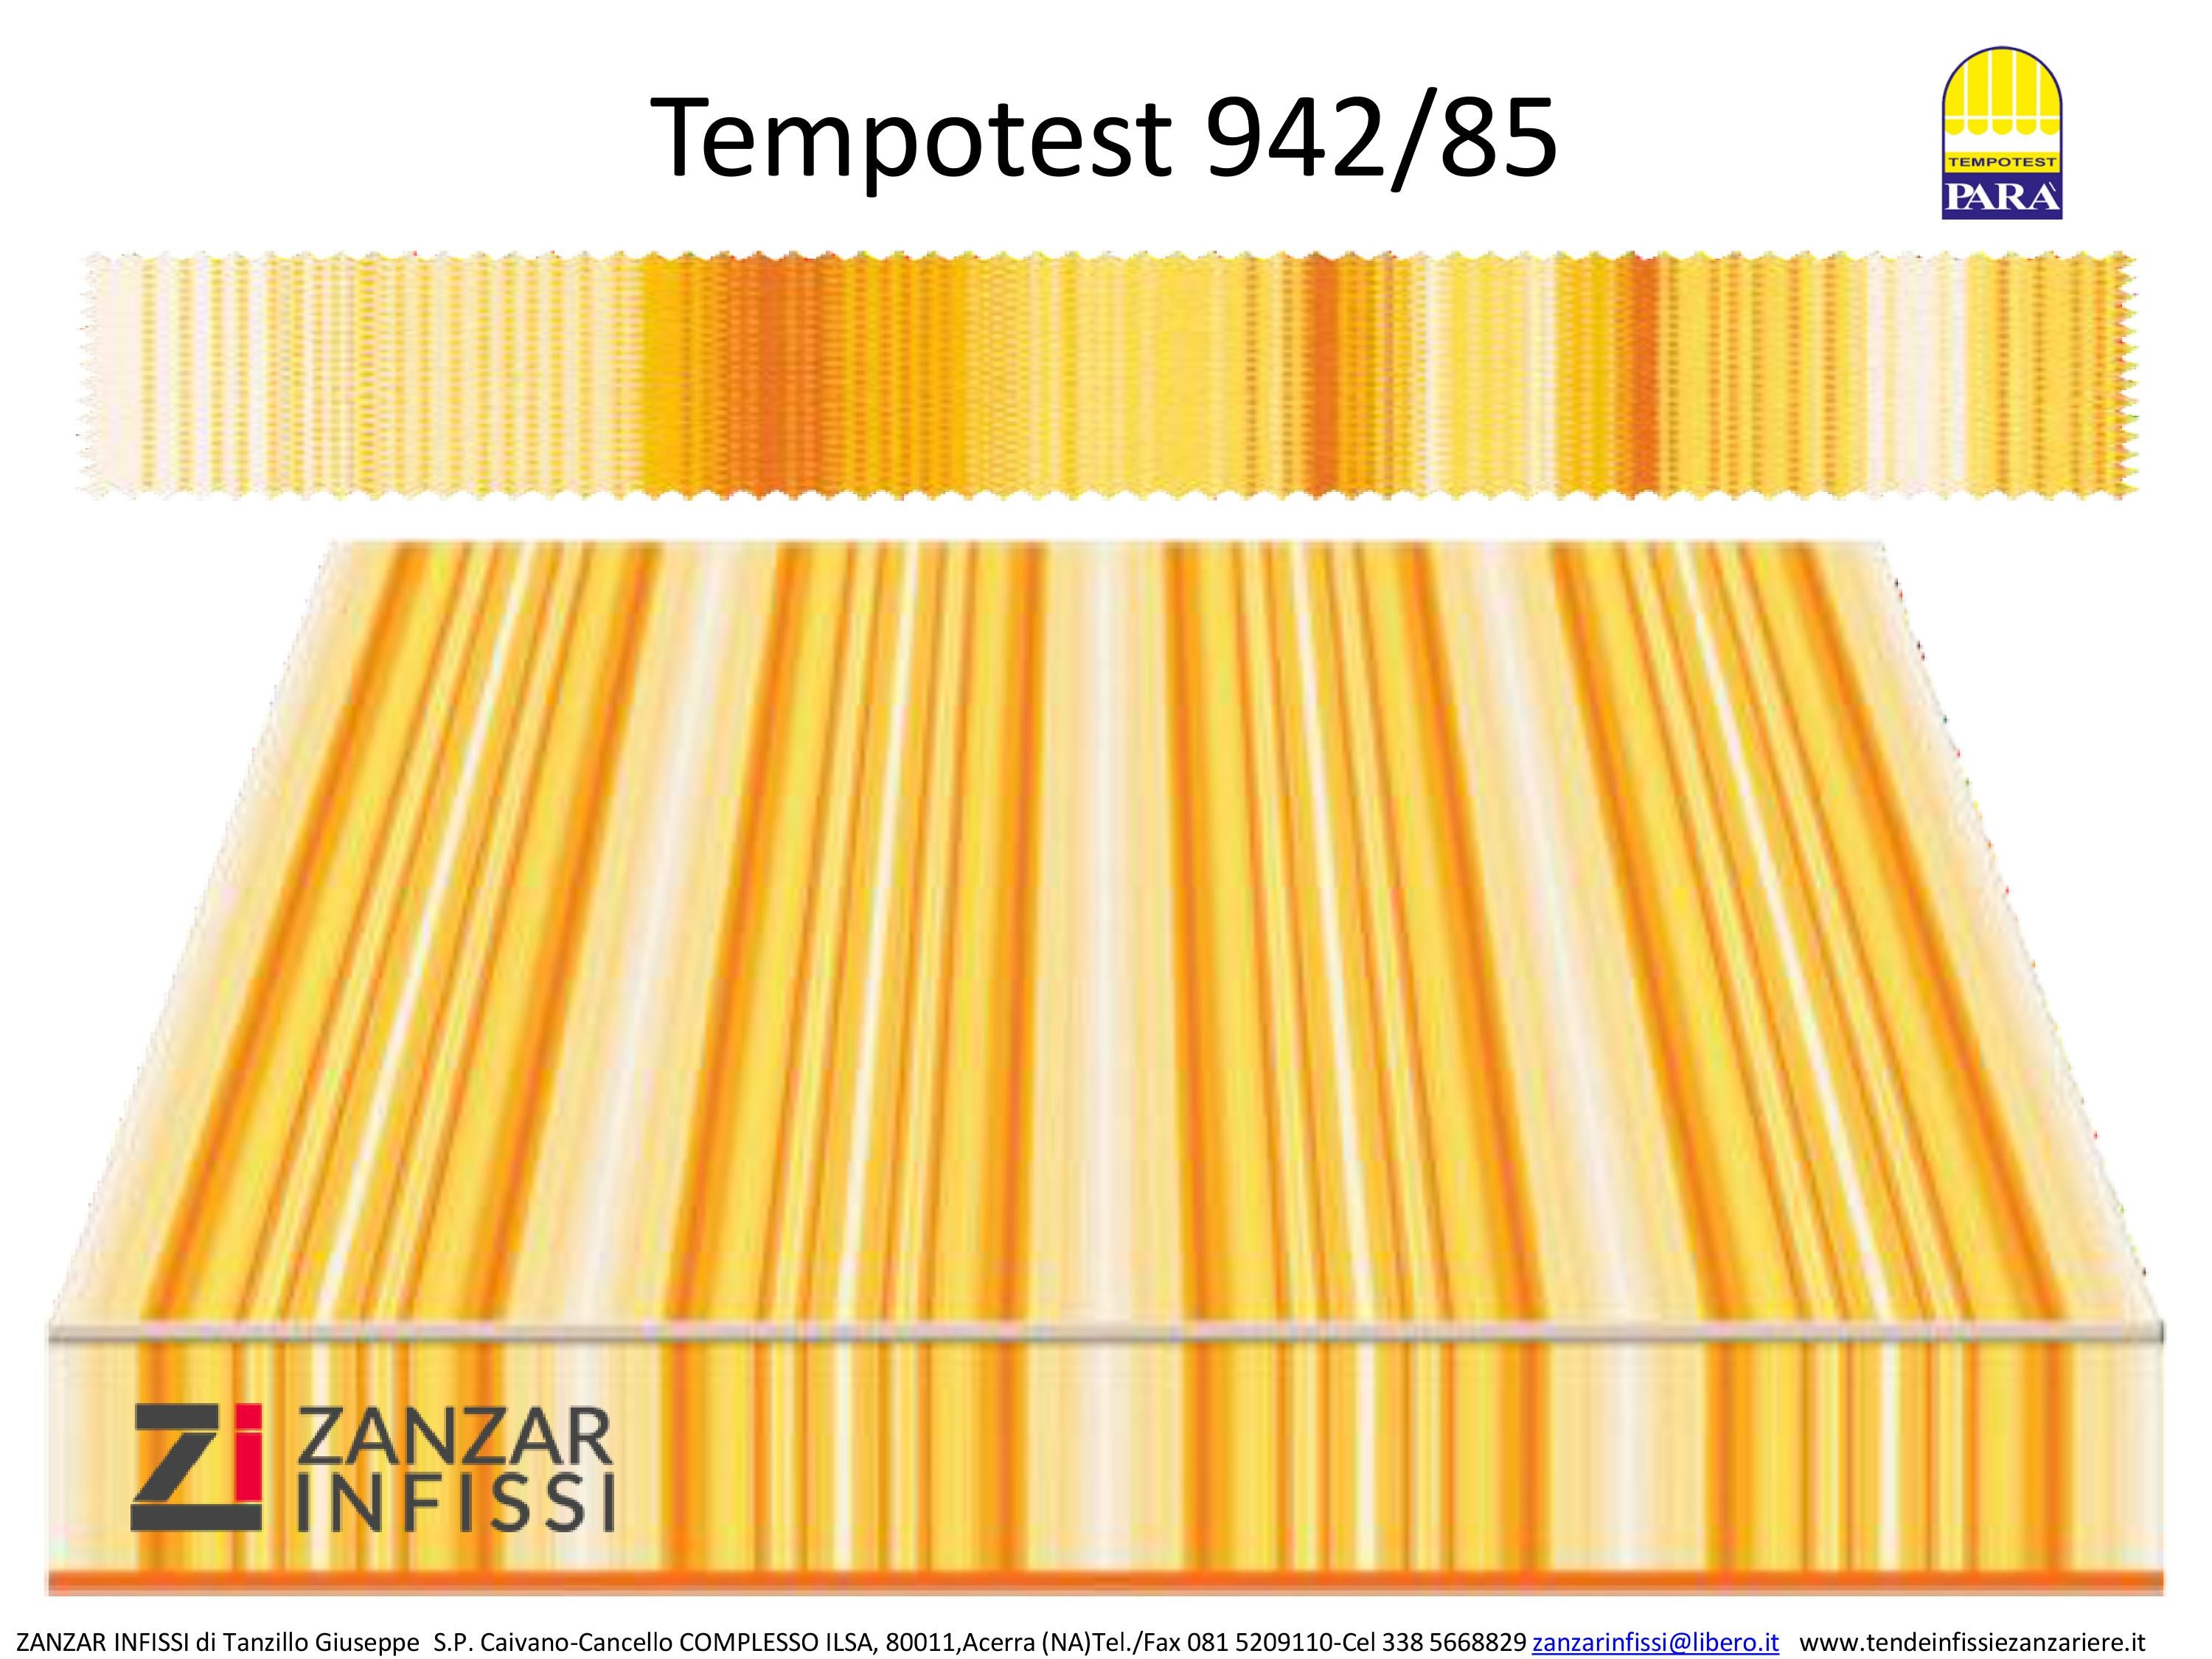 Tempotest 942/85